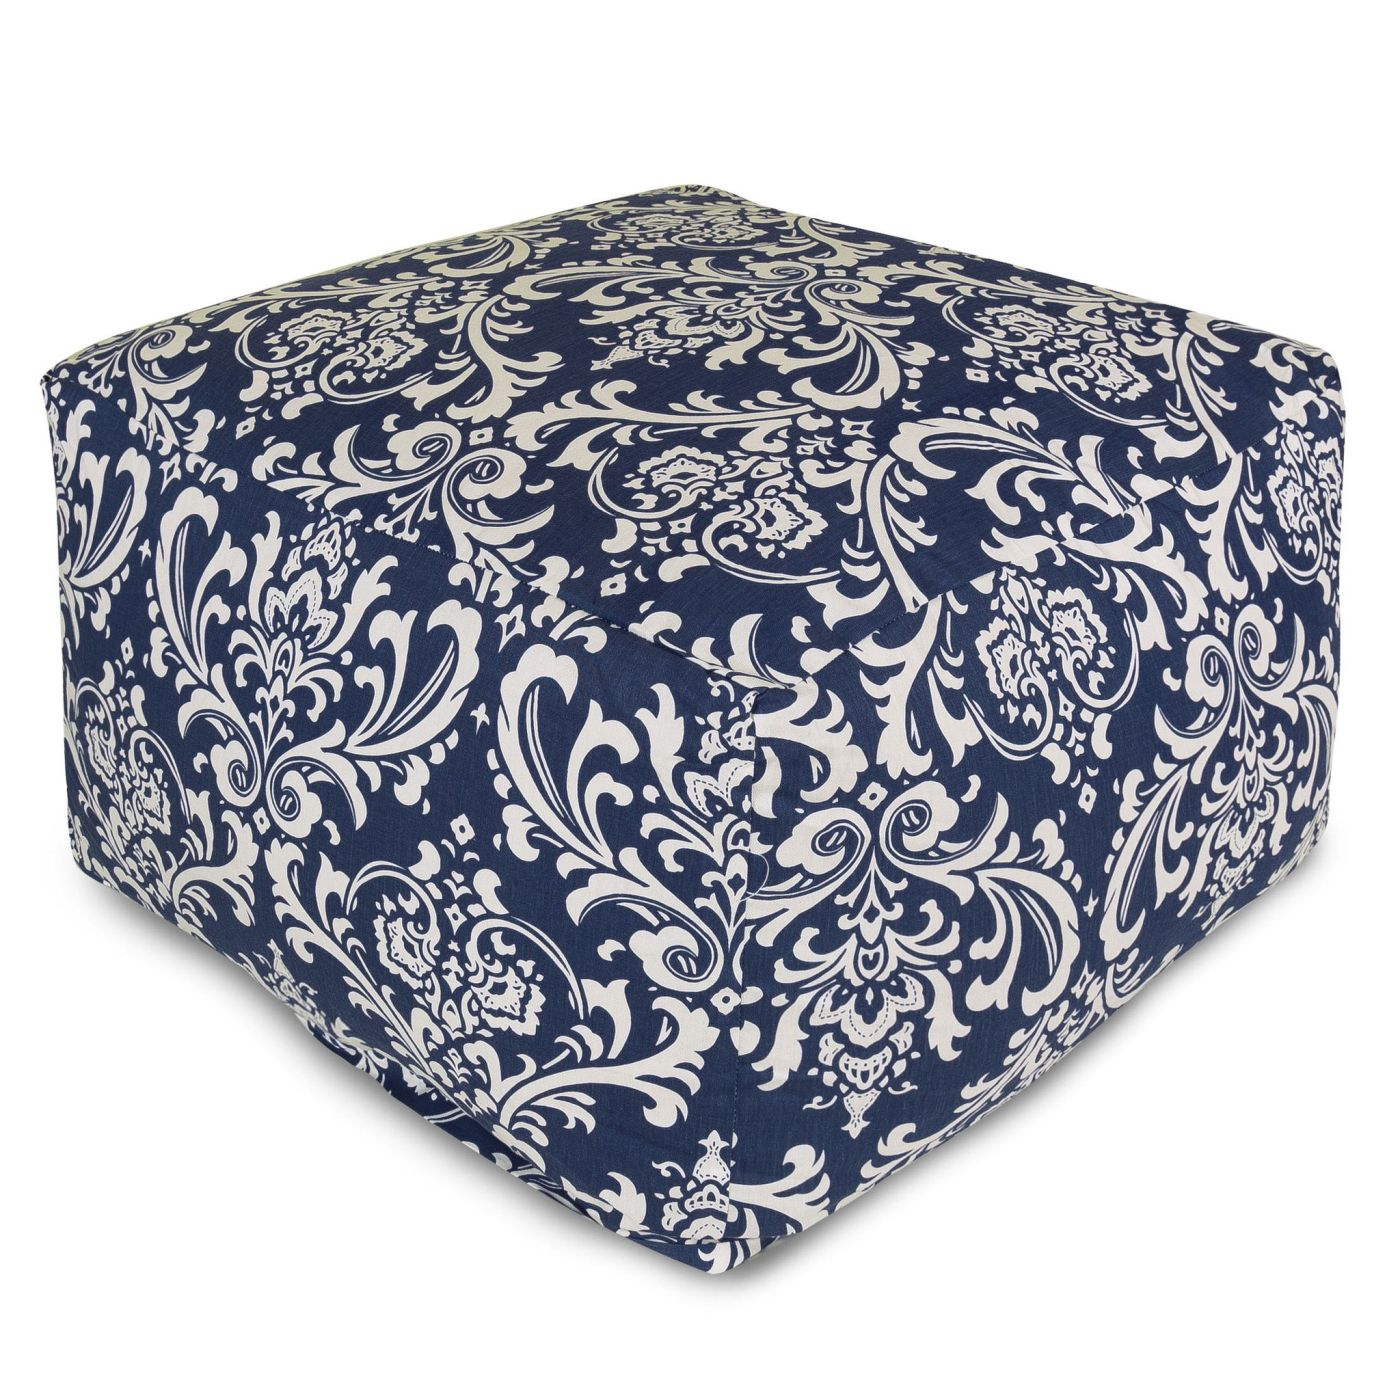 majestic home navy blue french quarter large ottoman at contemporary furniture warehouse. Black Bedroom Furniture Sets. Home Design Ideas